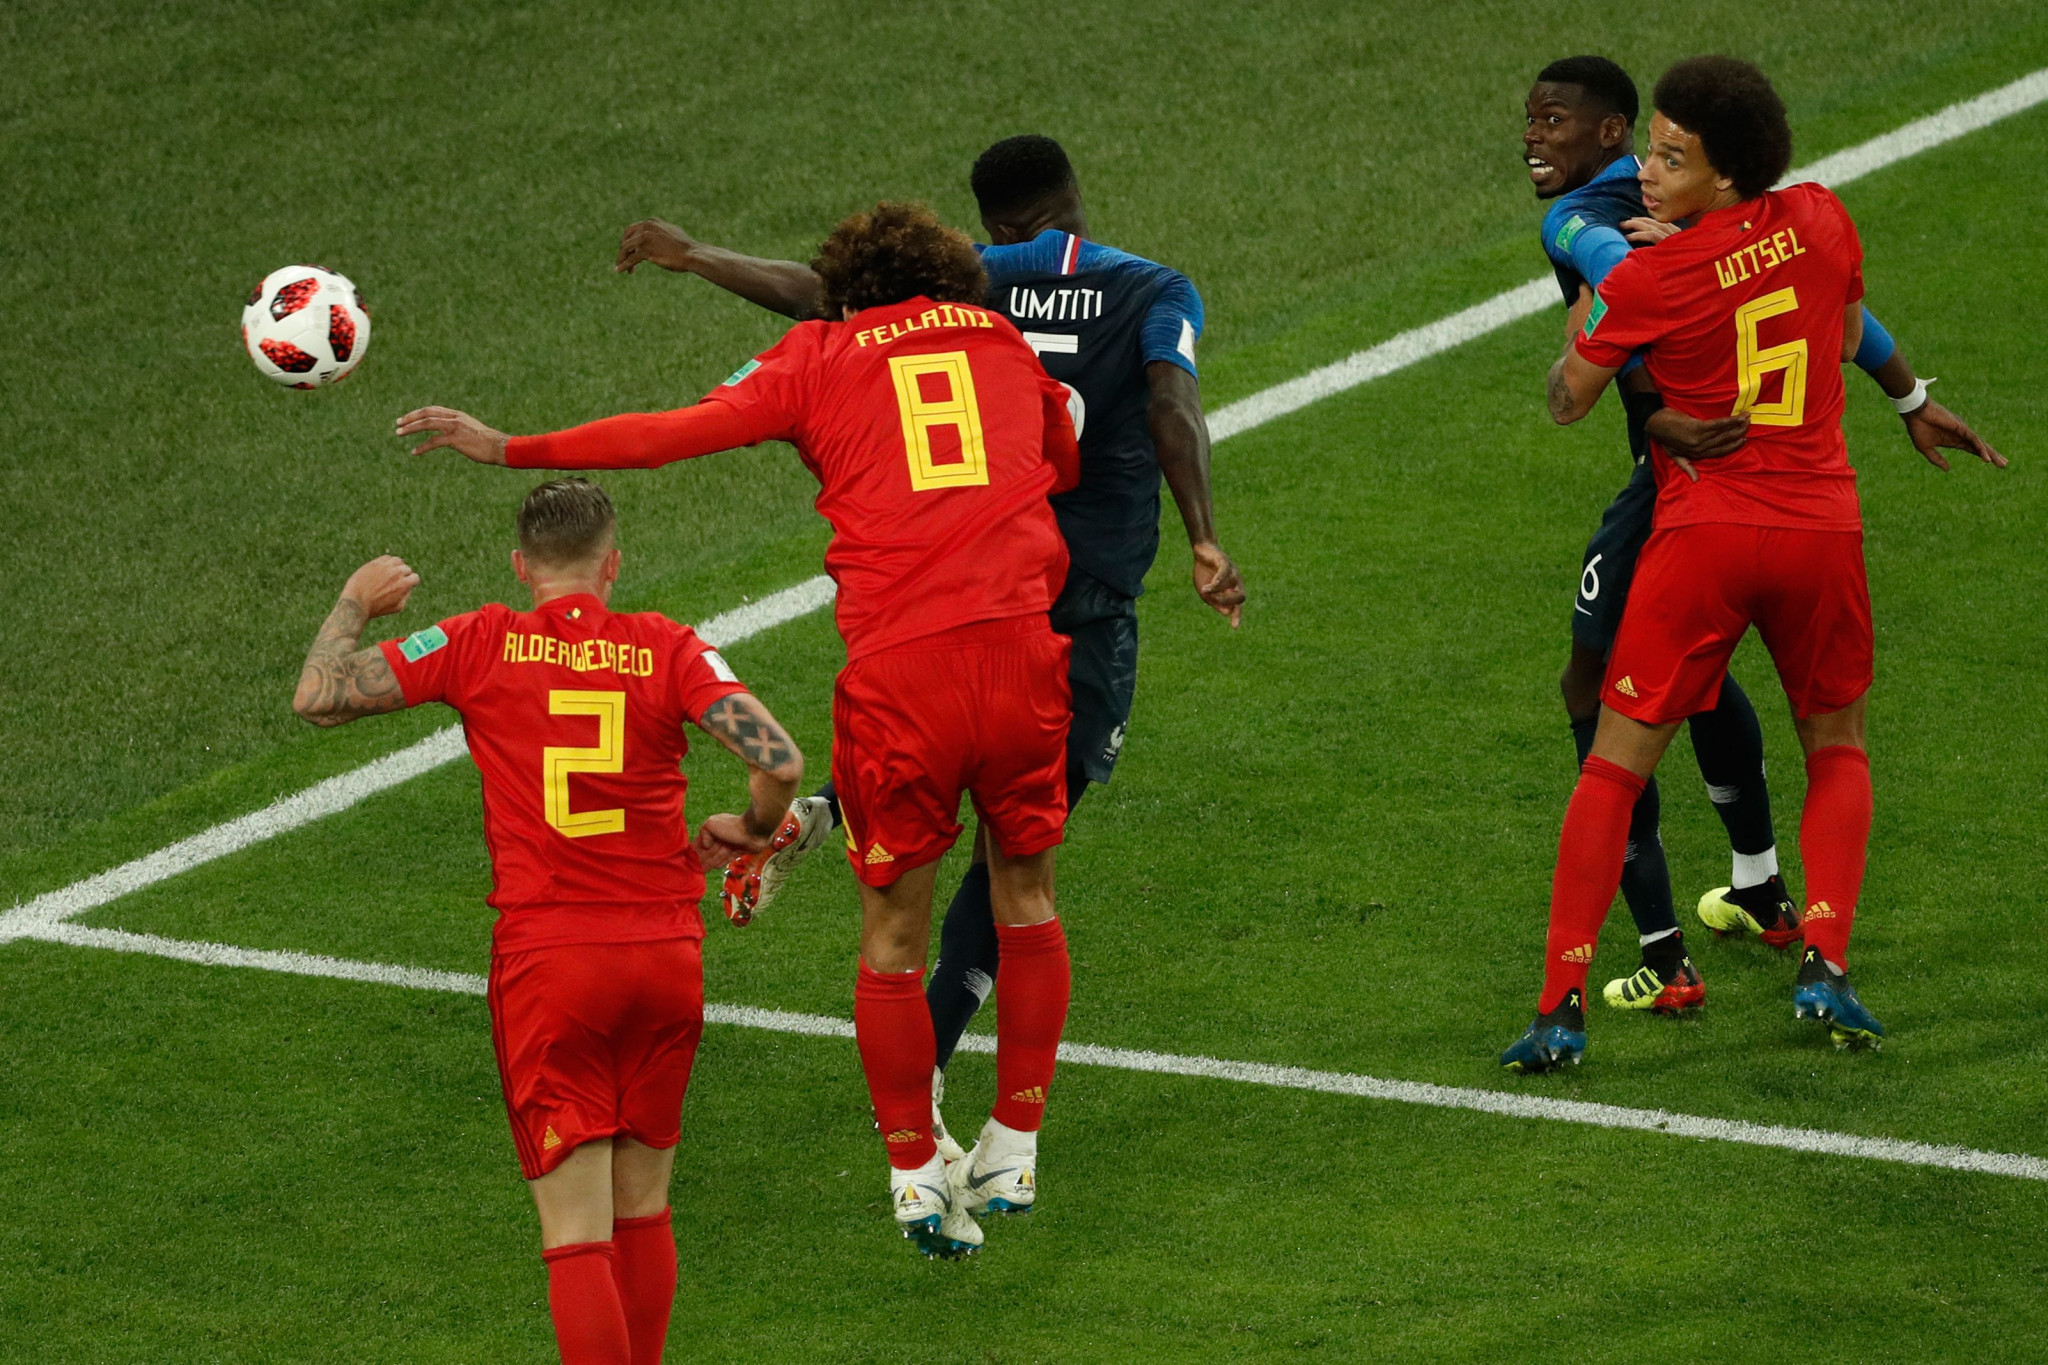 France's Samuel Umtiti rose highest to head home from a corner against Belgium ©Getty Images